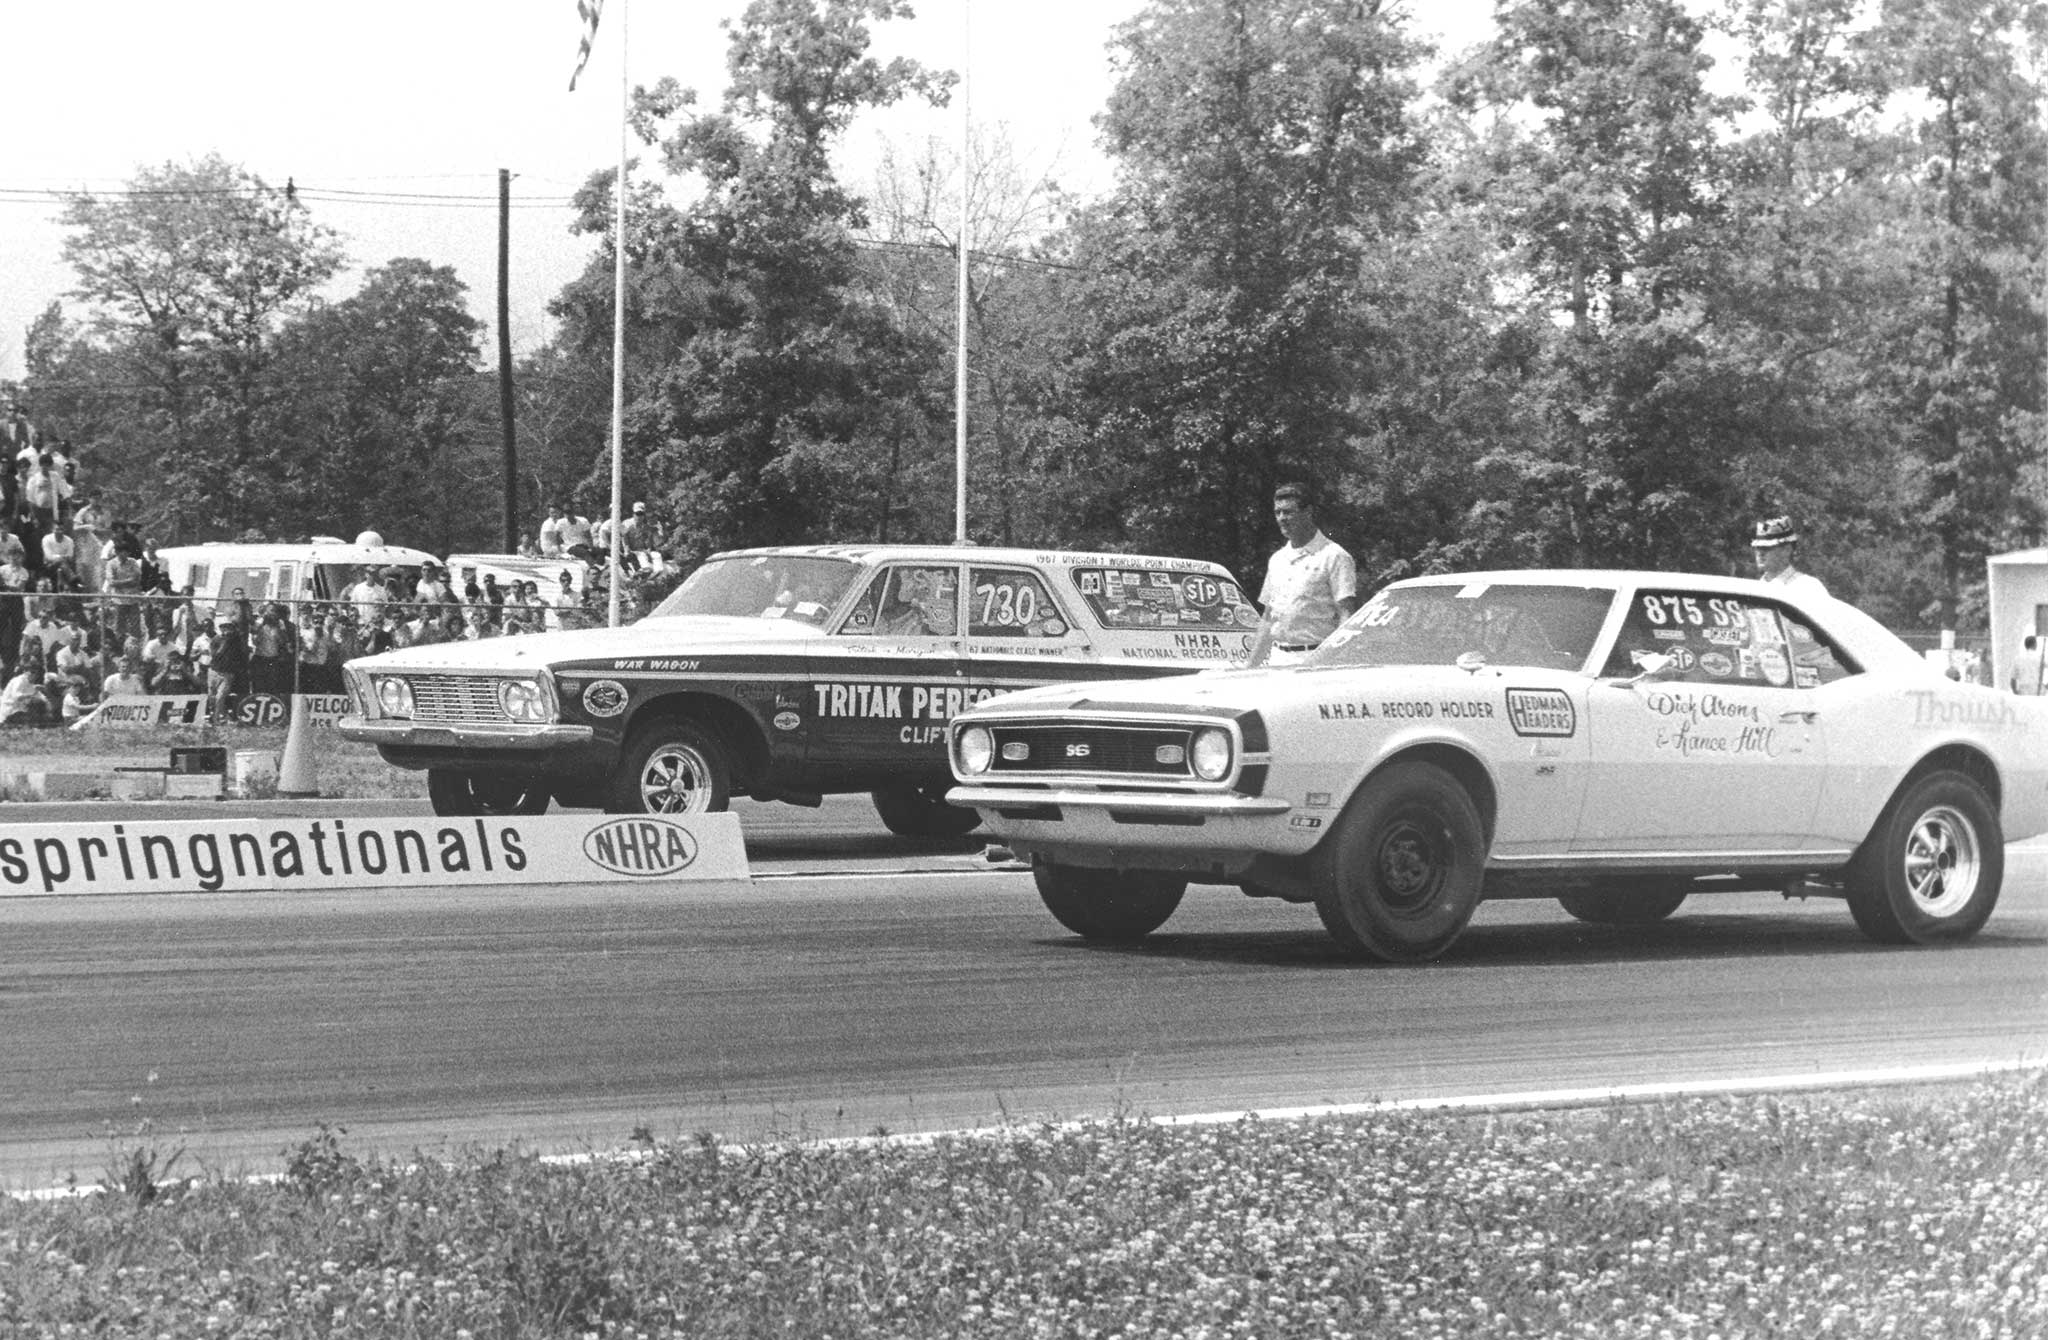 Billy Morgan, in the 1963 Plymouth War Wagon, and Dick Arons square off at the 1968 NHRA Springnationals in Englishtown. The Tritak & Morgan Max Wedge long-roof was a highly feared, multi-national event winner and record-holder. Arons was a frequent class winner and record-setter, and later a celebrated race engine builder.